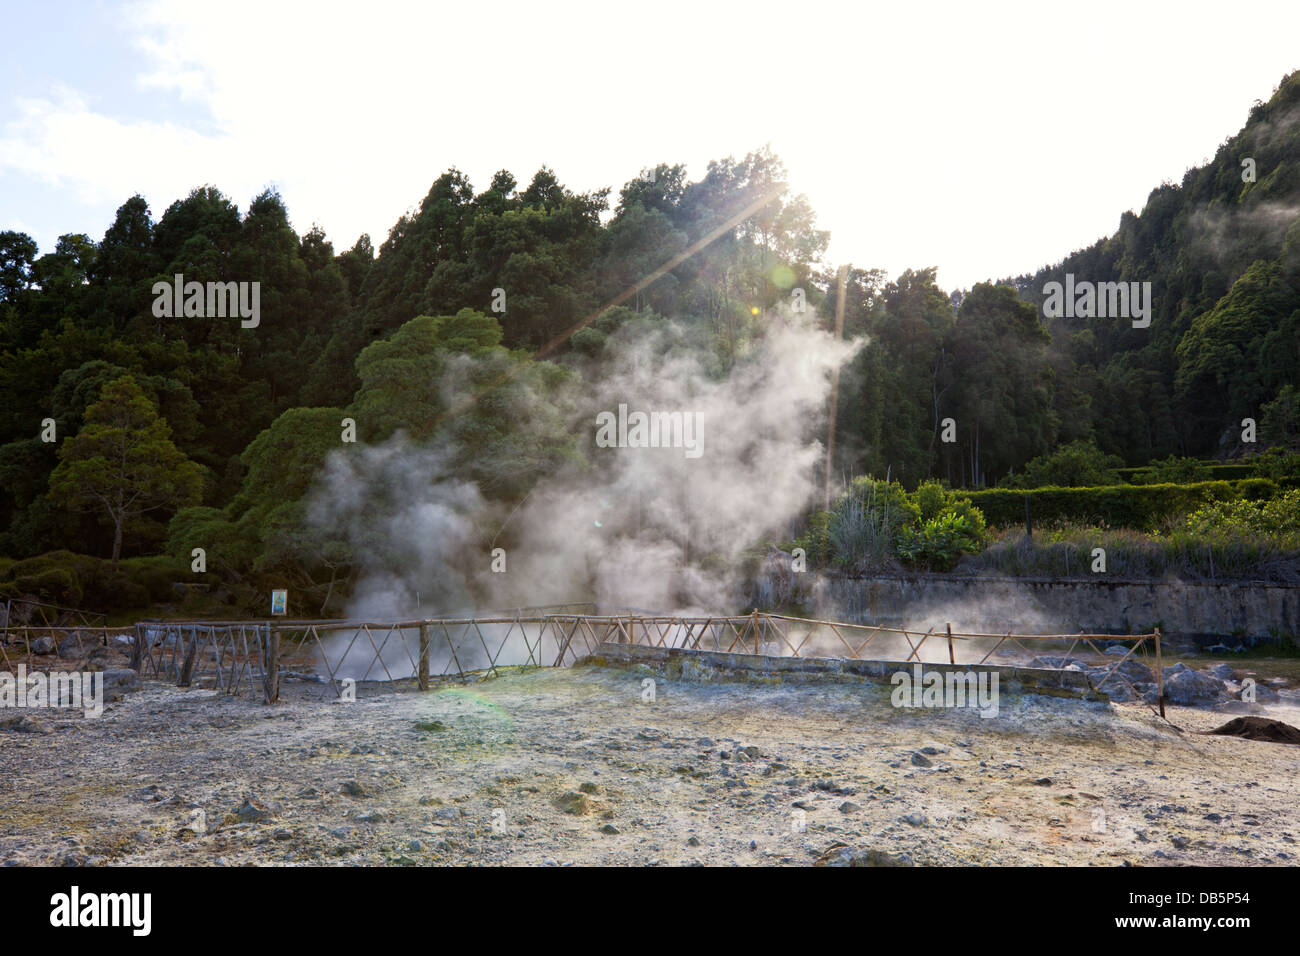 Geysers and fumaroles at the shore of Lake Furnas, São Miguel - Stock Image